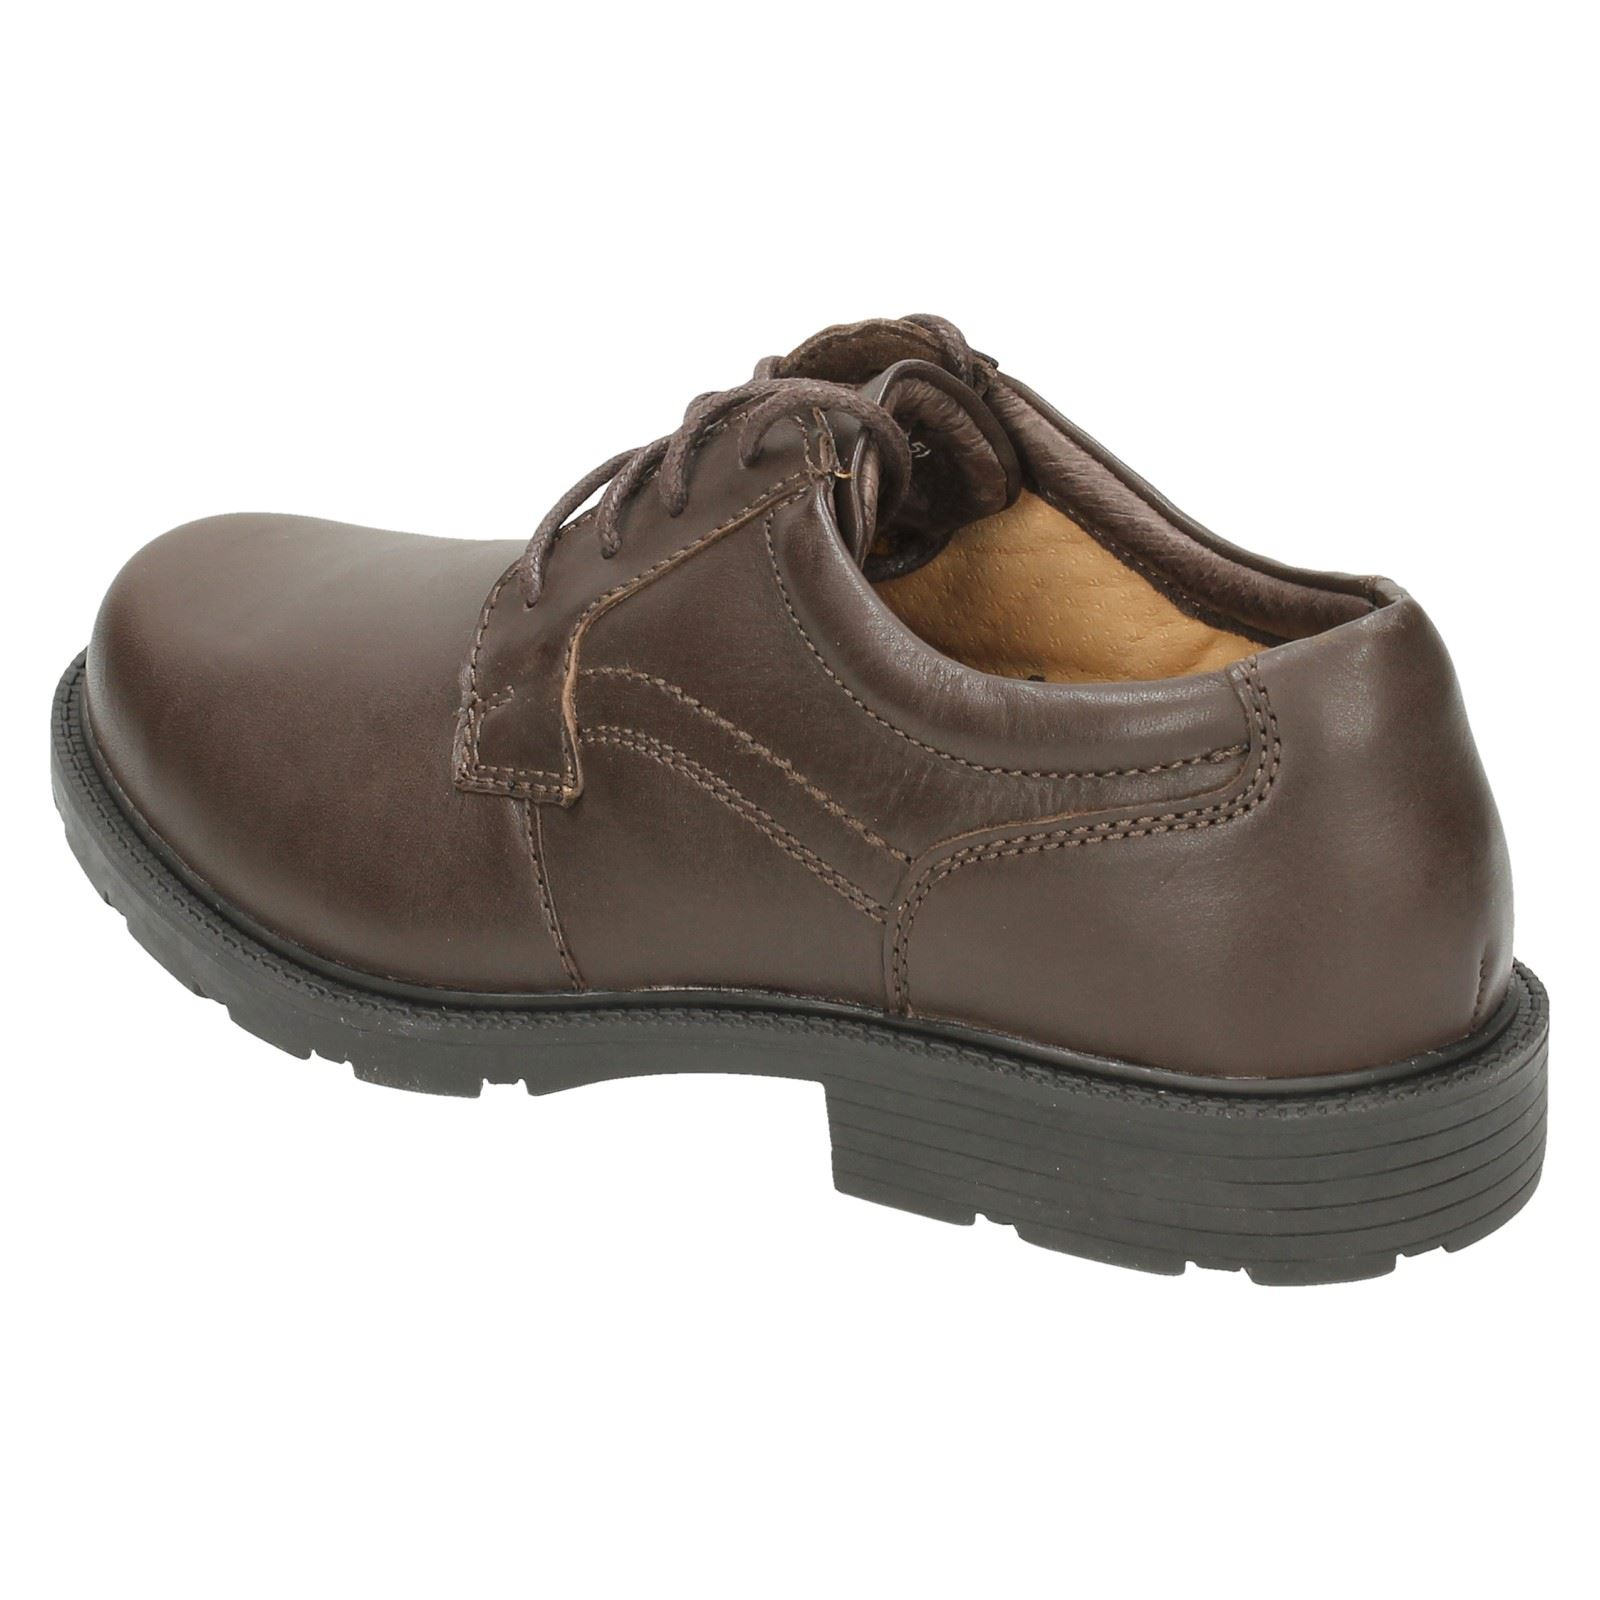 mens clarks formal lace up shoes lair gate ebay